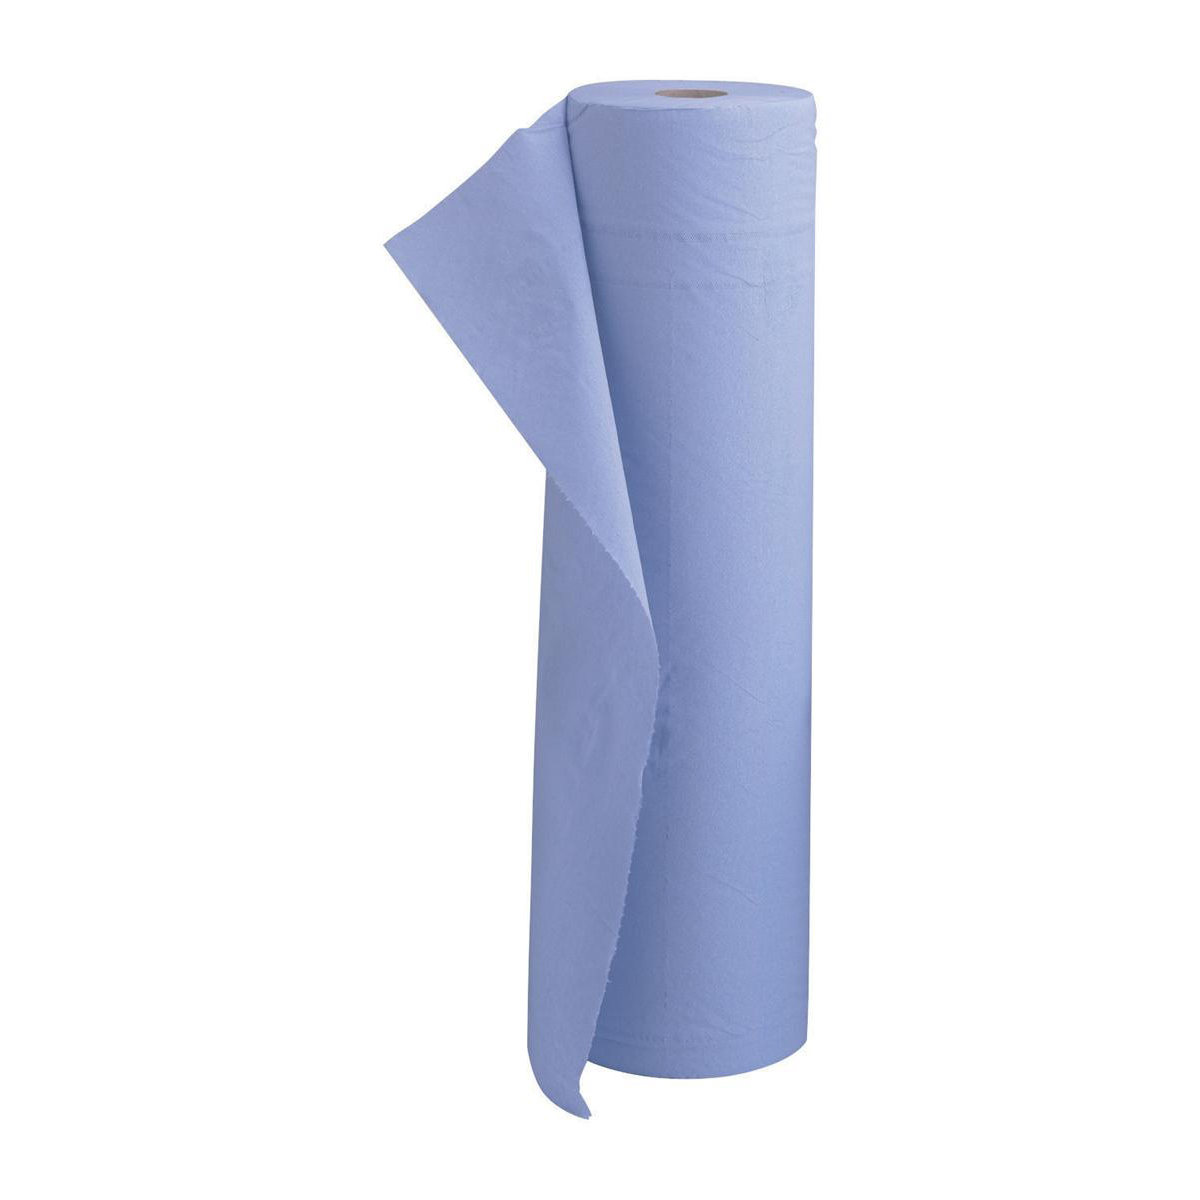 5 Star Facilities Hygiene Roll 20 Inch Width 100 per cent recycled 2-ply 130 Sheets W500xL457mm 40m Blue